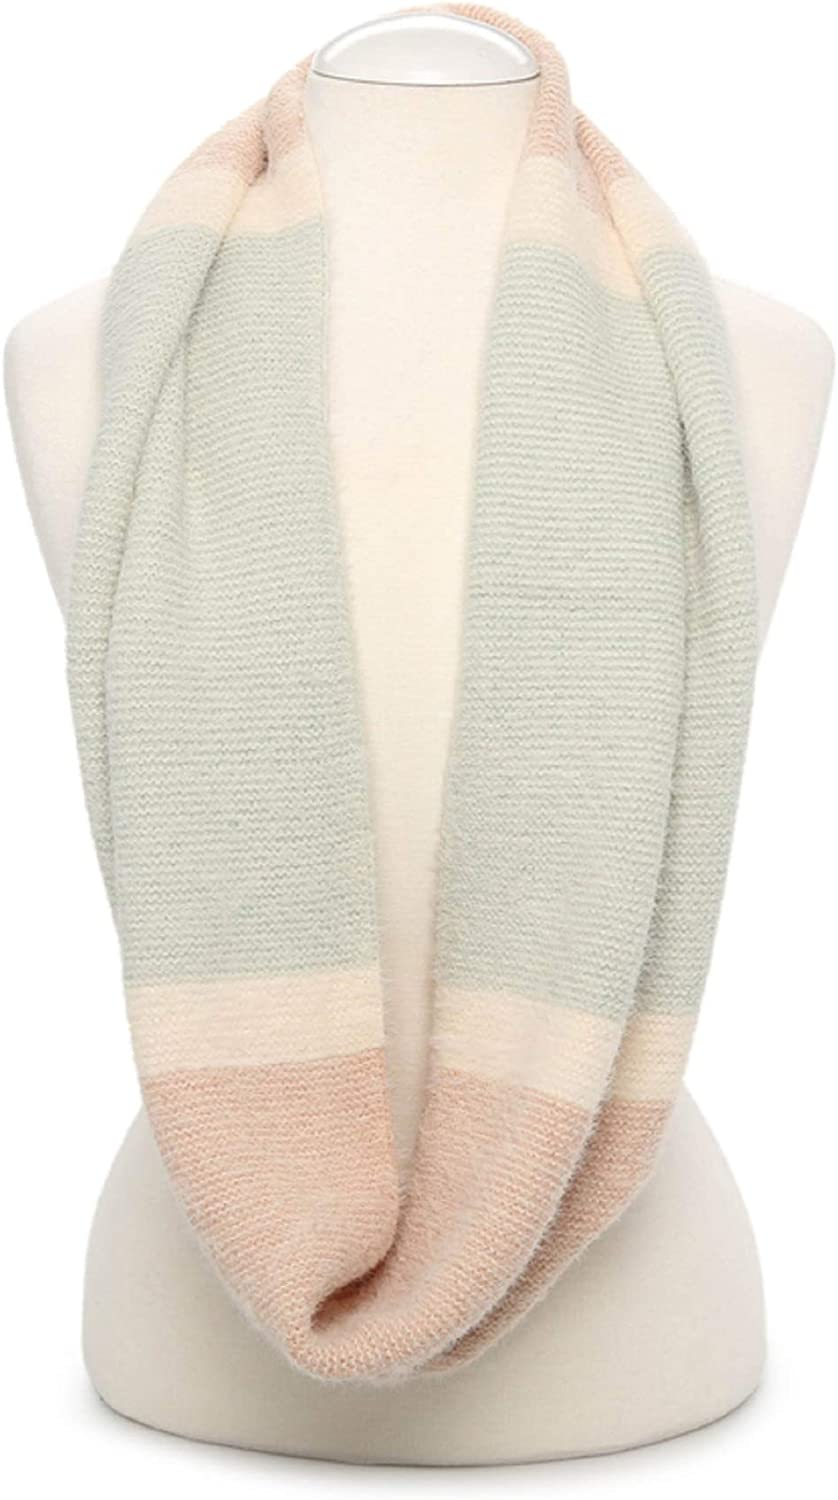 Knit color Block Design Infinity Scarf